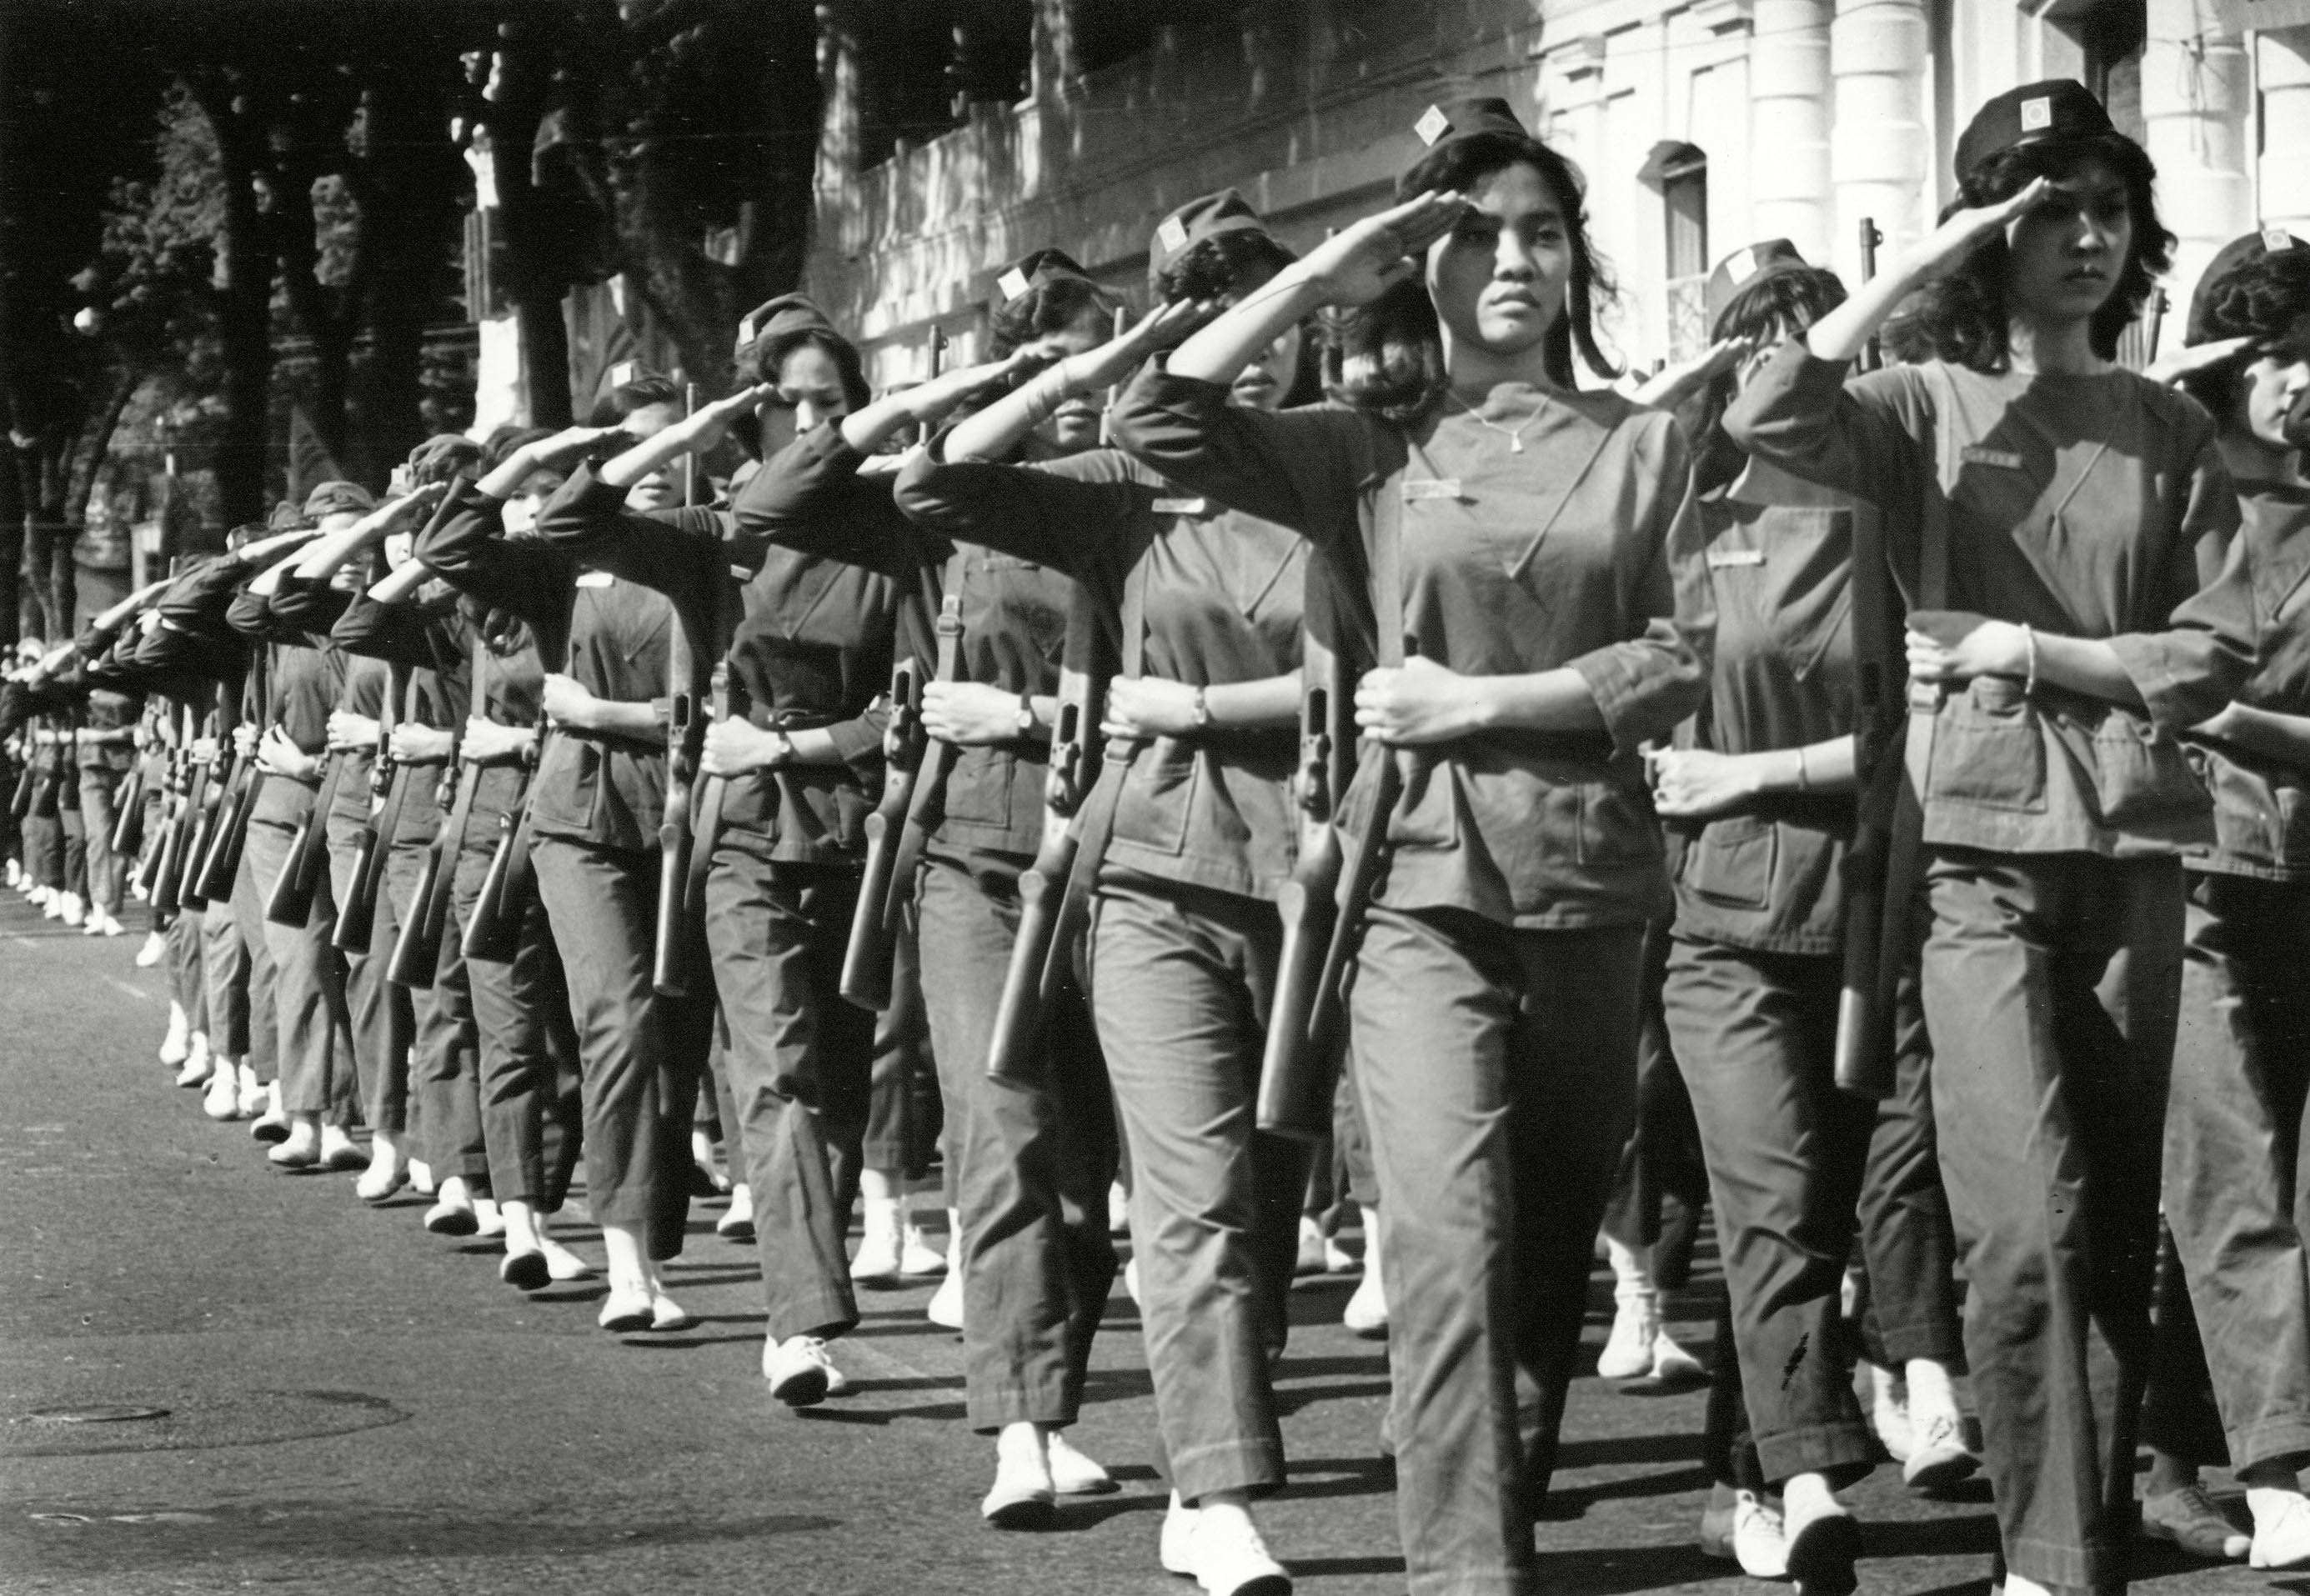 'The Vietnam War': How Vietnamese Women Saw Combat and Got Involved in Other Harrowing War Efforts